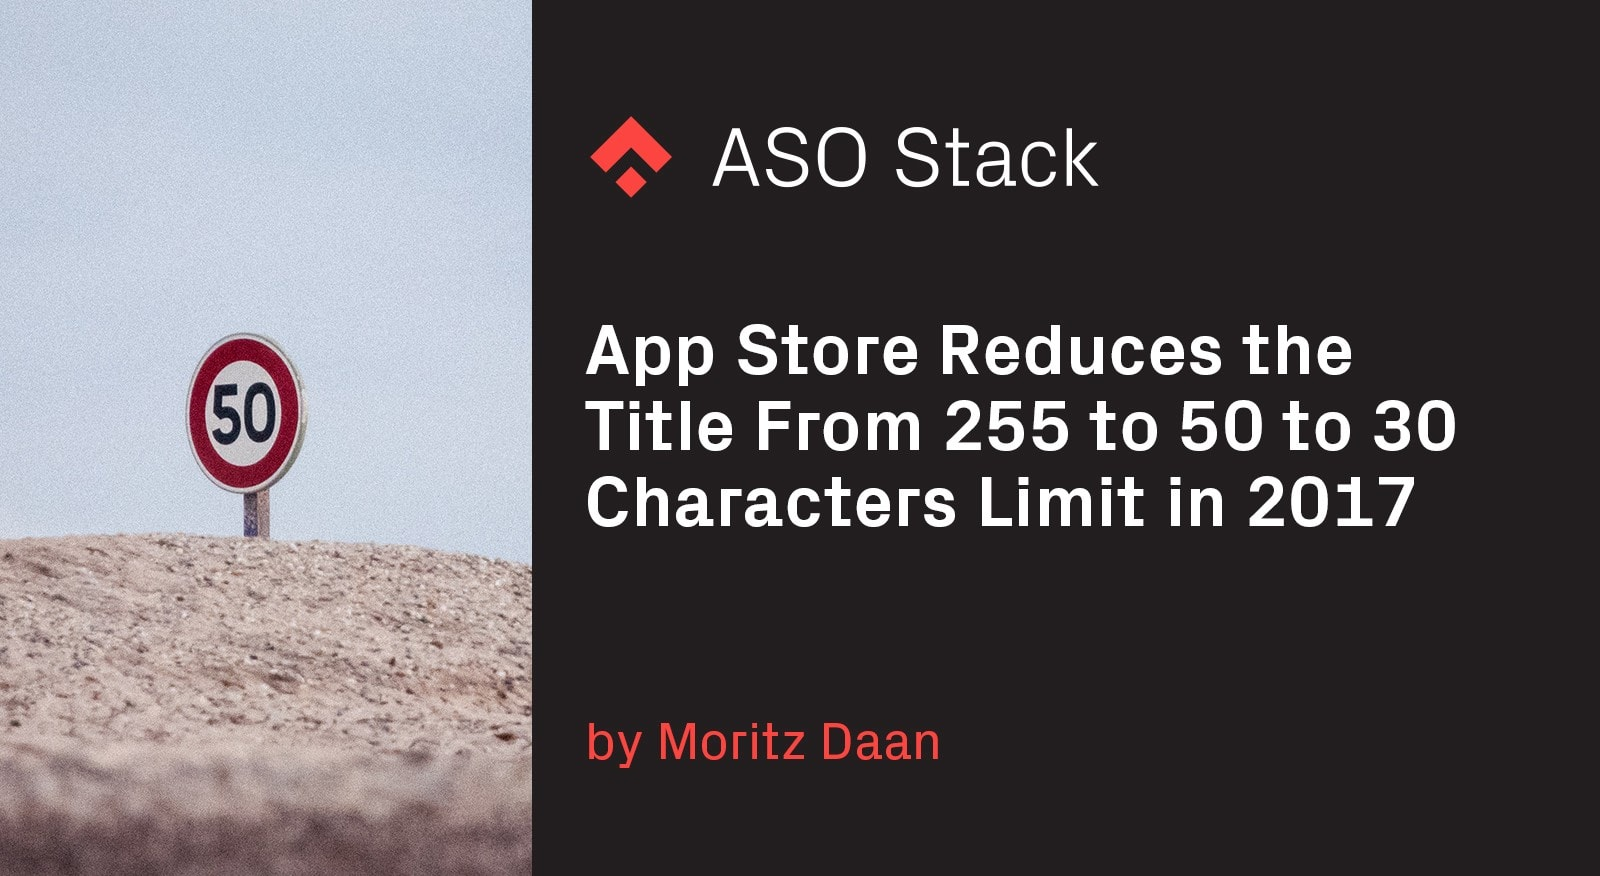 App Store reduces the title from 255 to 50 to 30 characters limit in 2017